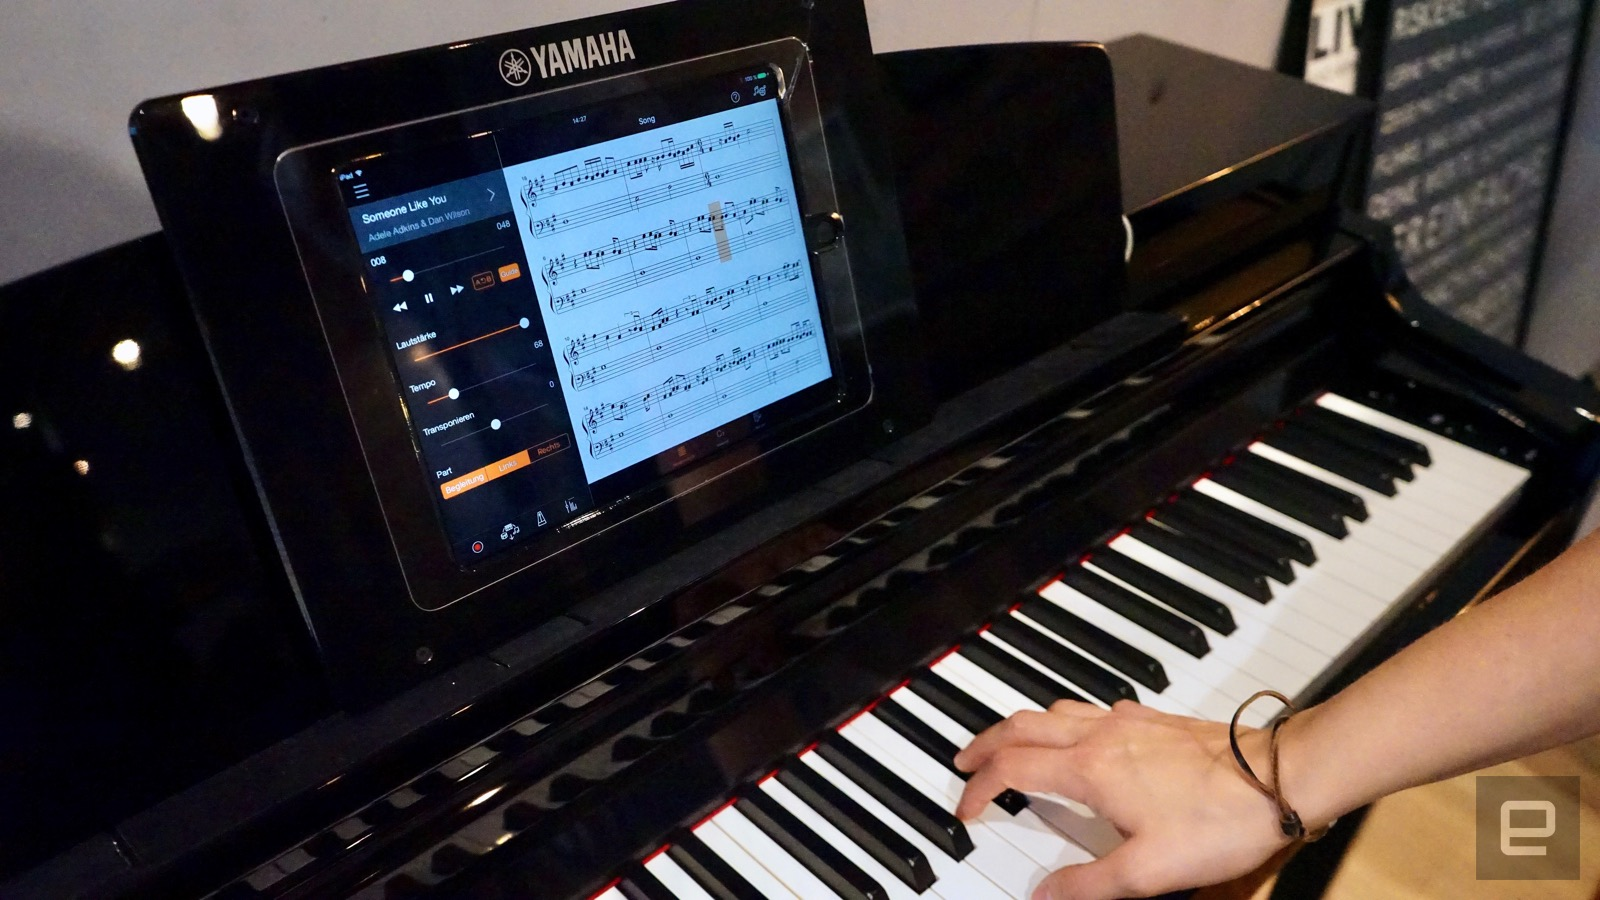 Yamaha 39 s smart pianos work with alexa and teach you how to for Yamaha credit application